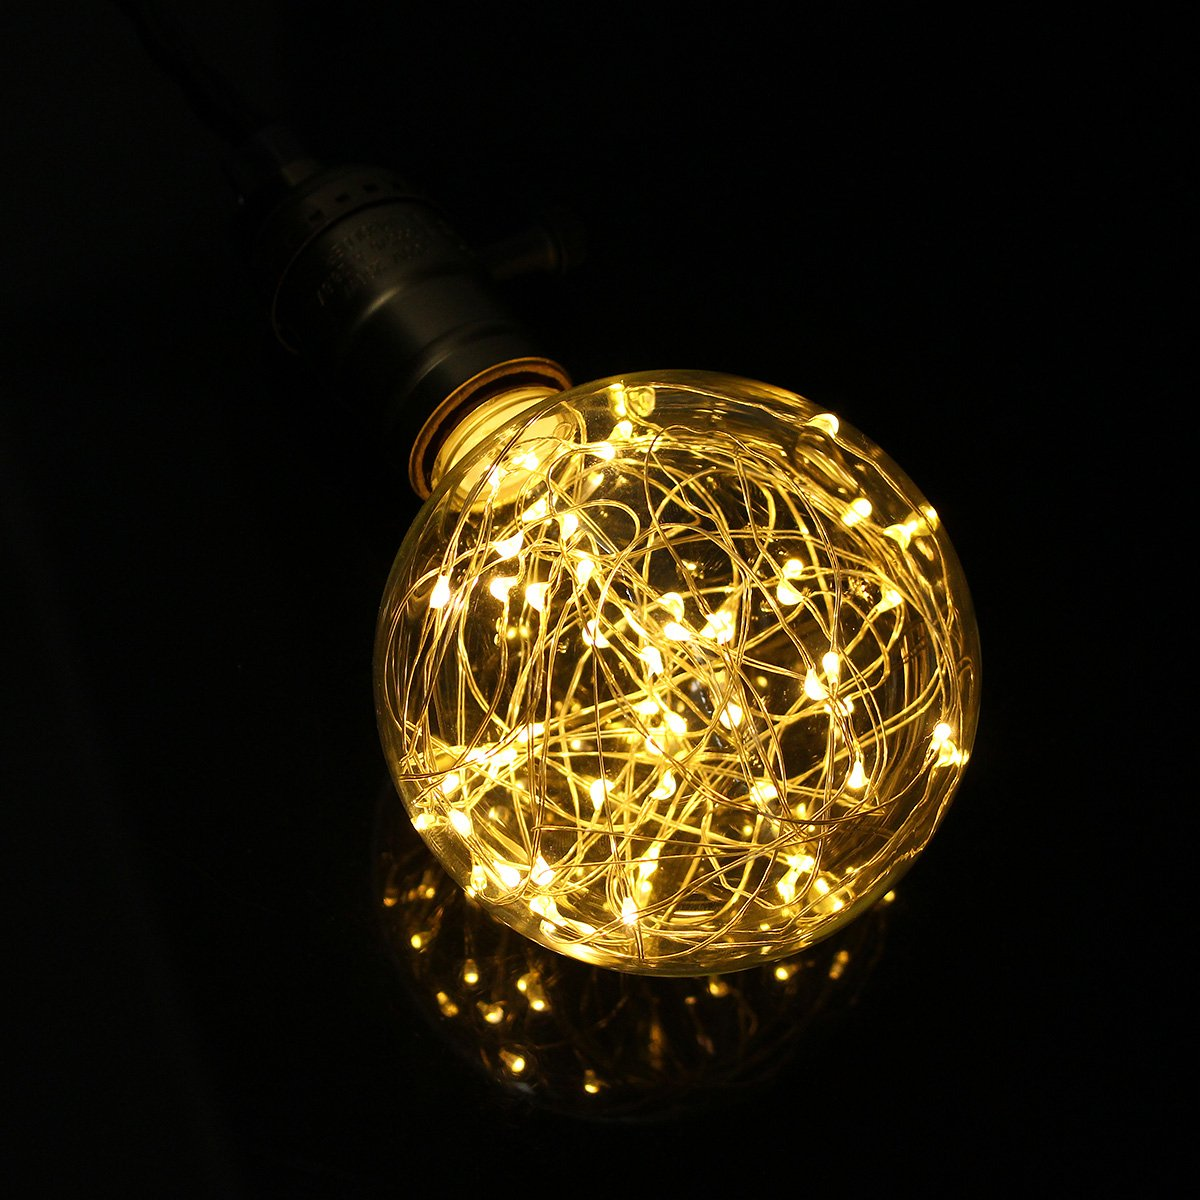 KINGSO G95 Vintage Edison Bulb,E27 Base 3W 300LM Antique Filament Globe Spiral Design LED Lights for Christmas Home Party Cafes Bars Decoration Warm White 2